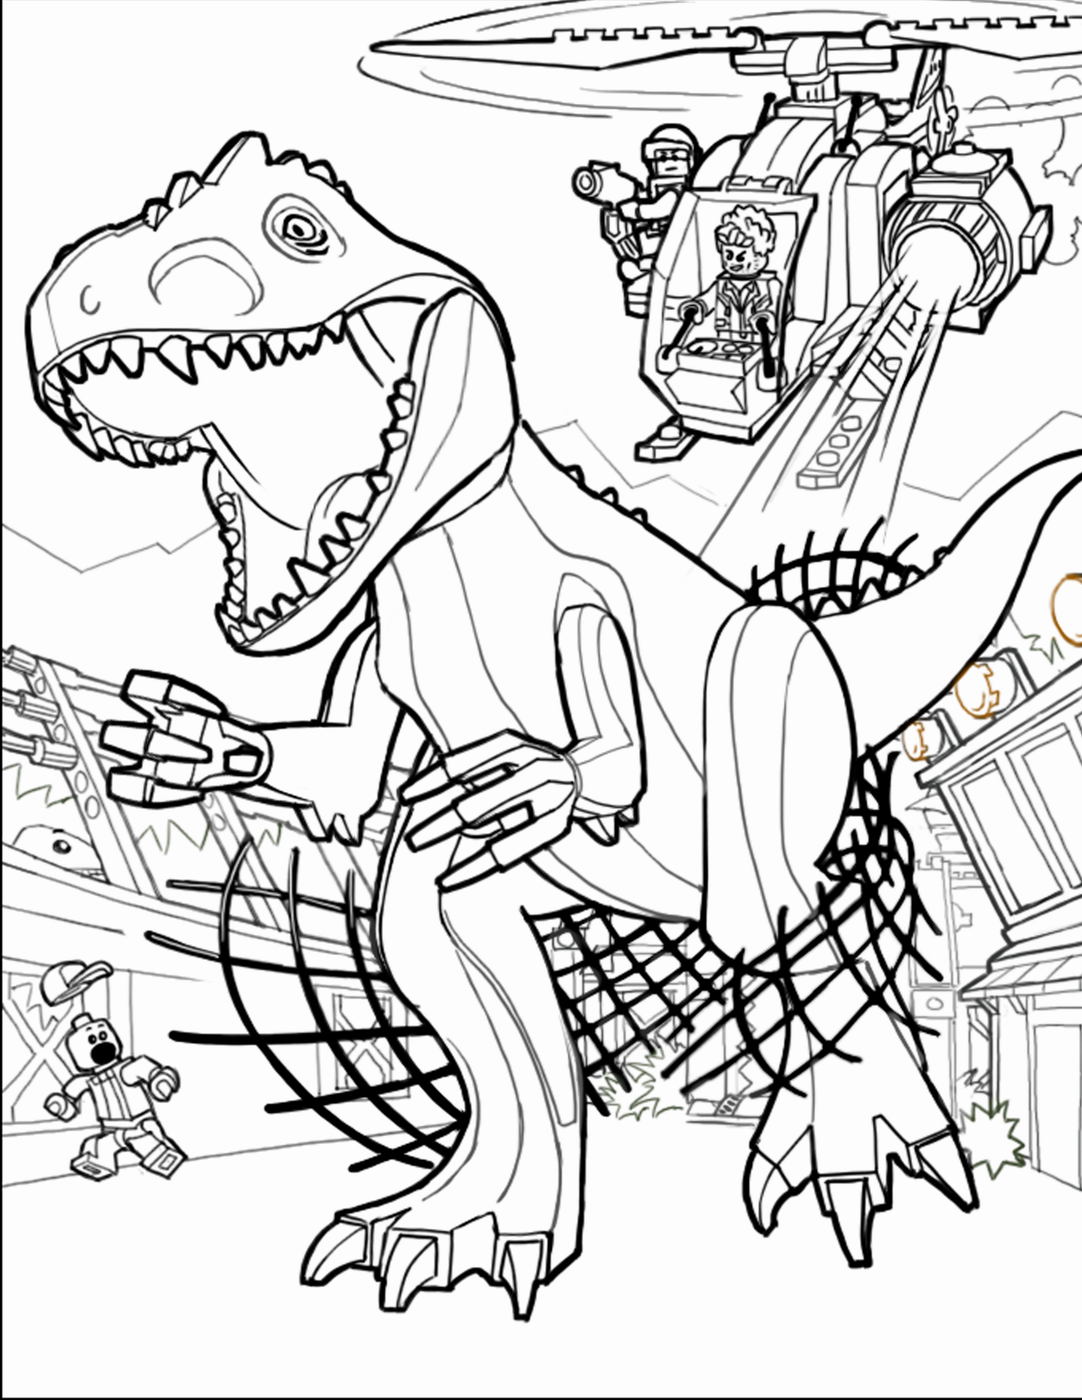 Lego Coloring Pages Jurassic World Lego Coloring Pages Lego Coloring Dinosaur Coloring Pages